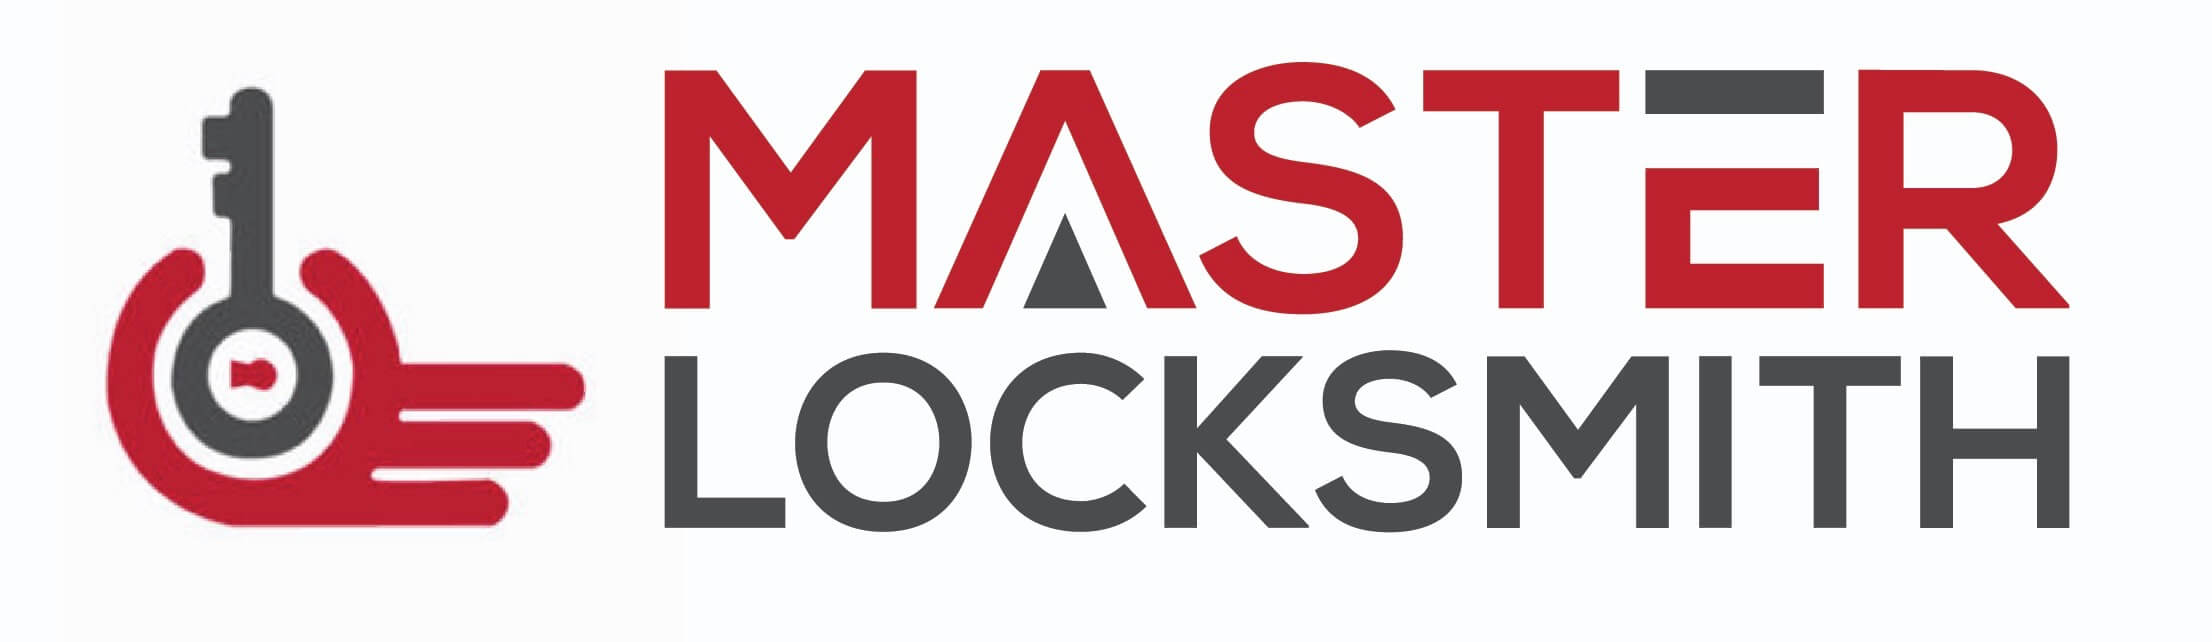 Master Locksmith Is The St. Louis Locksmith Near Me